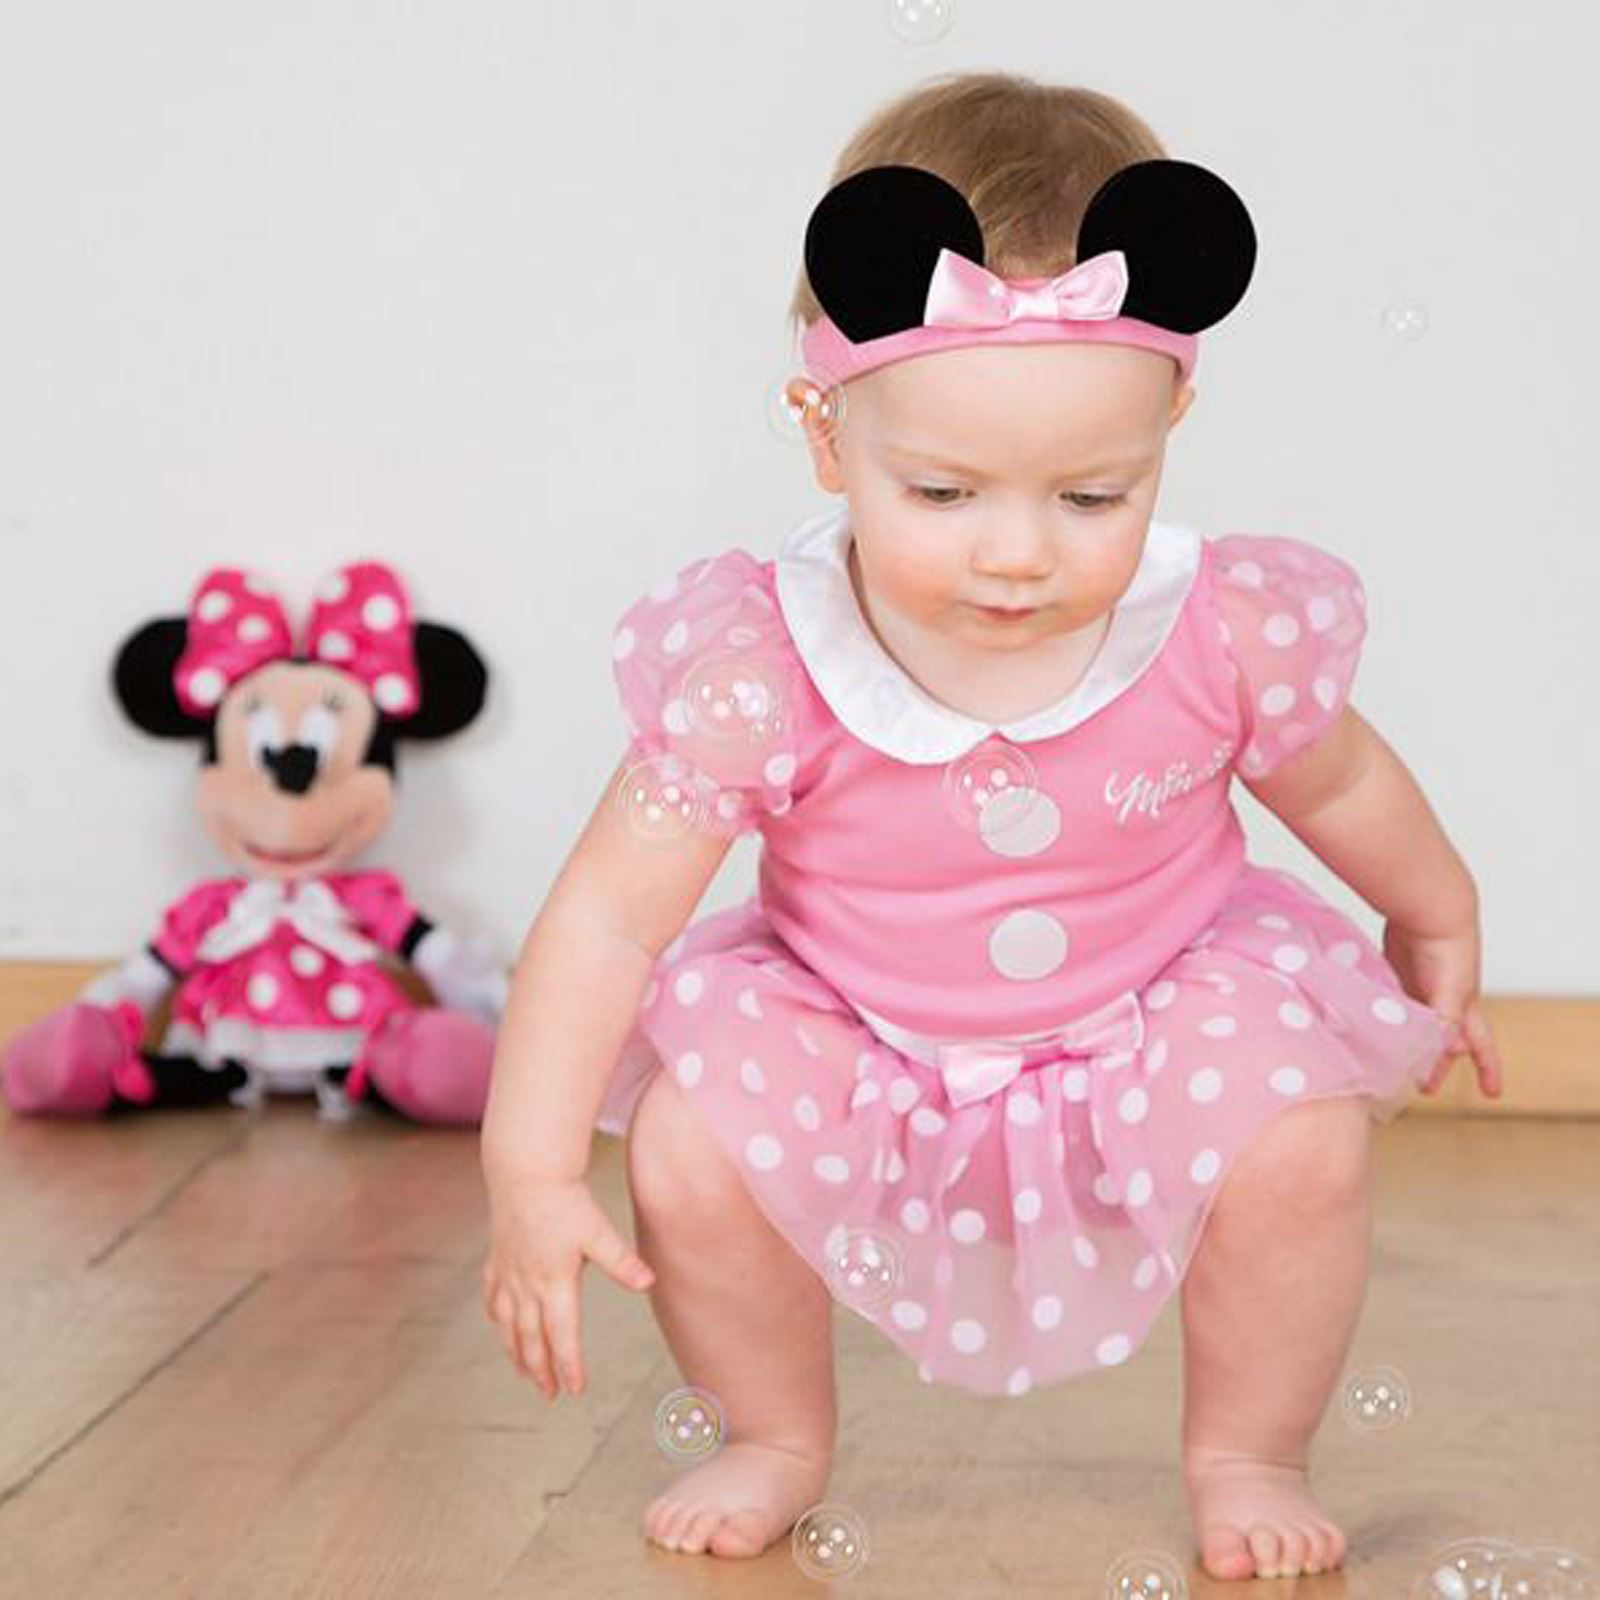 Baby boy girl pink disney minnie mouse costume body | eBay